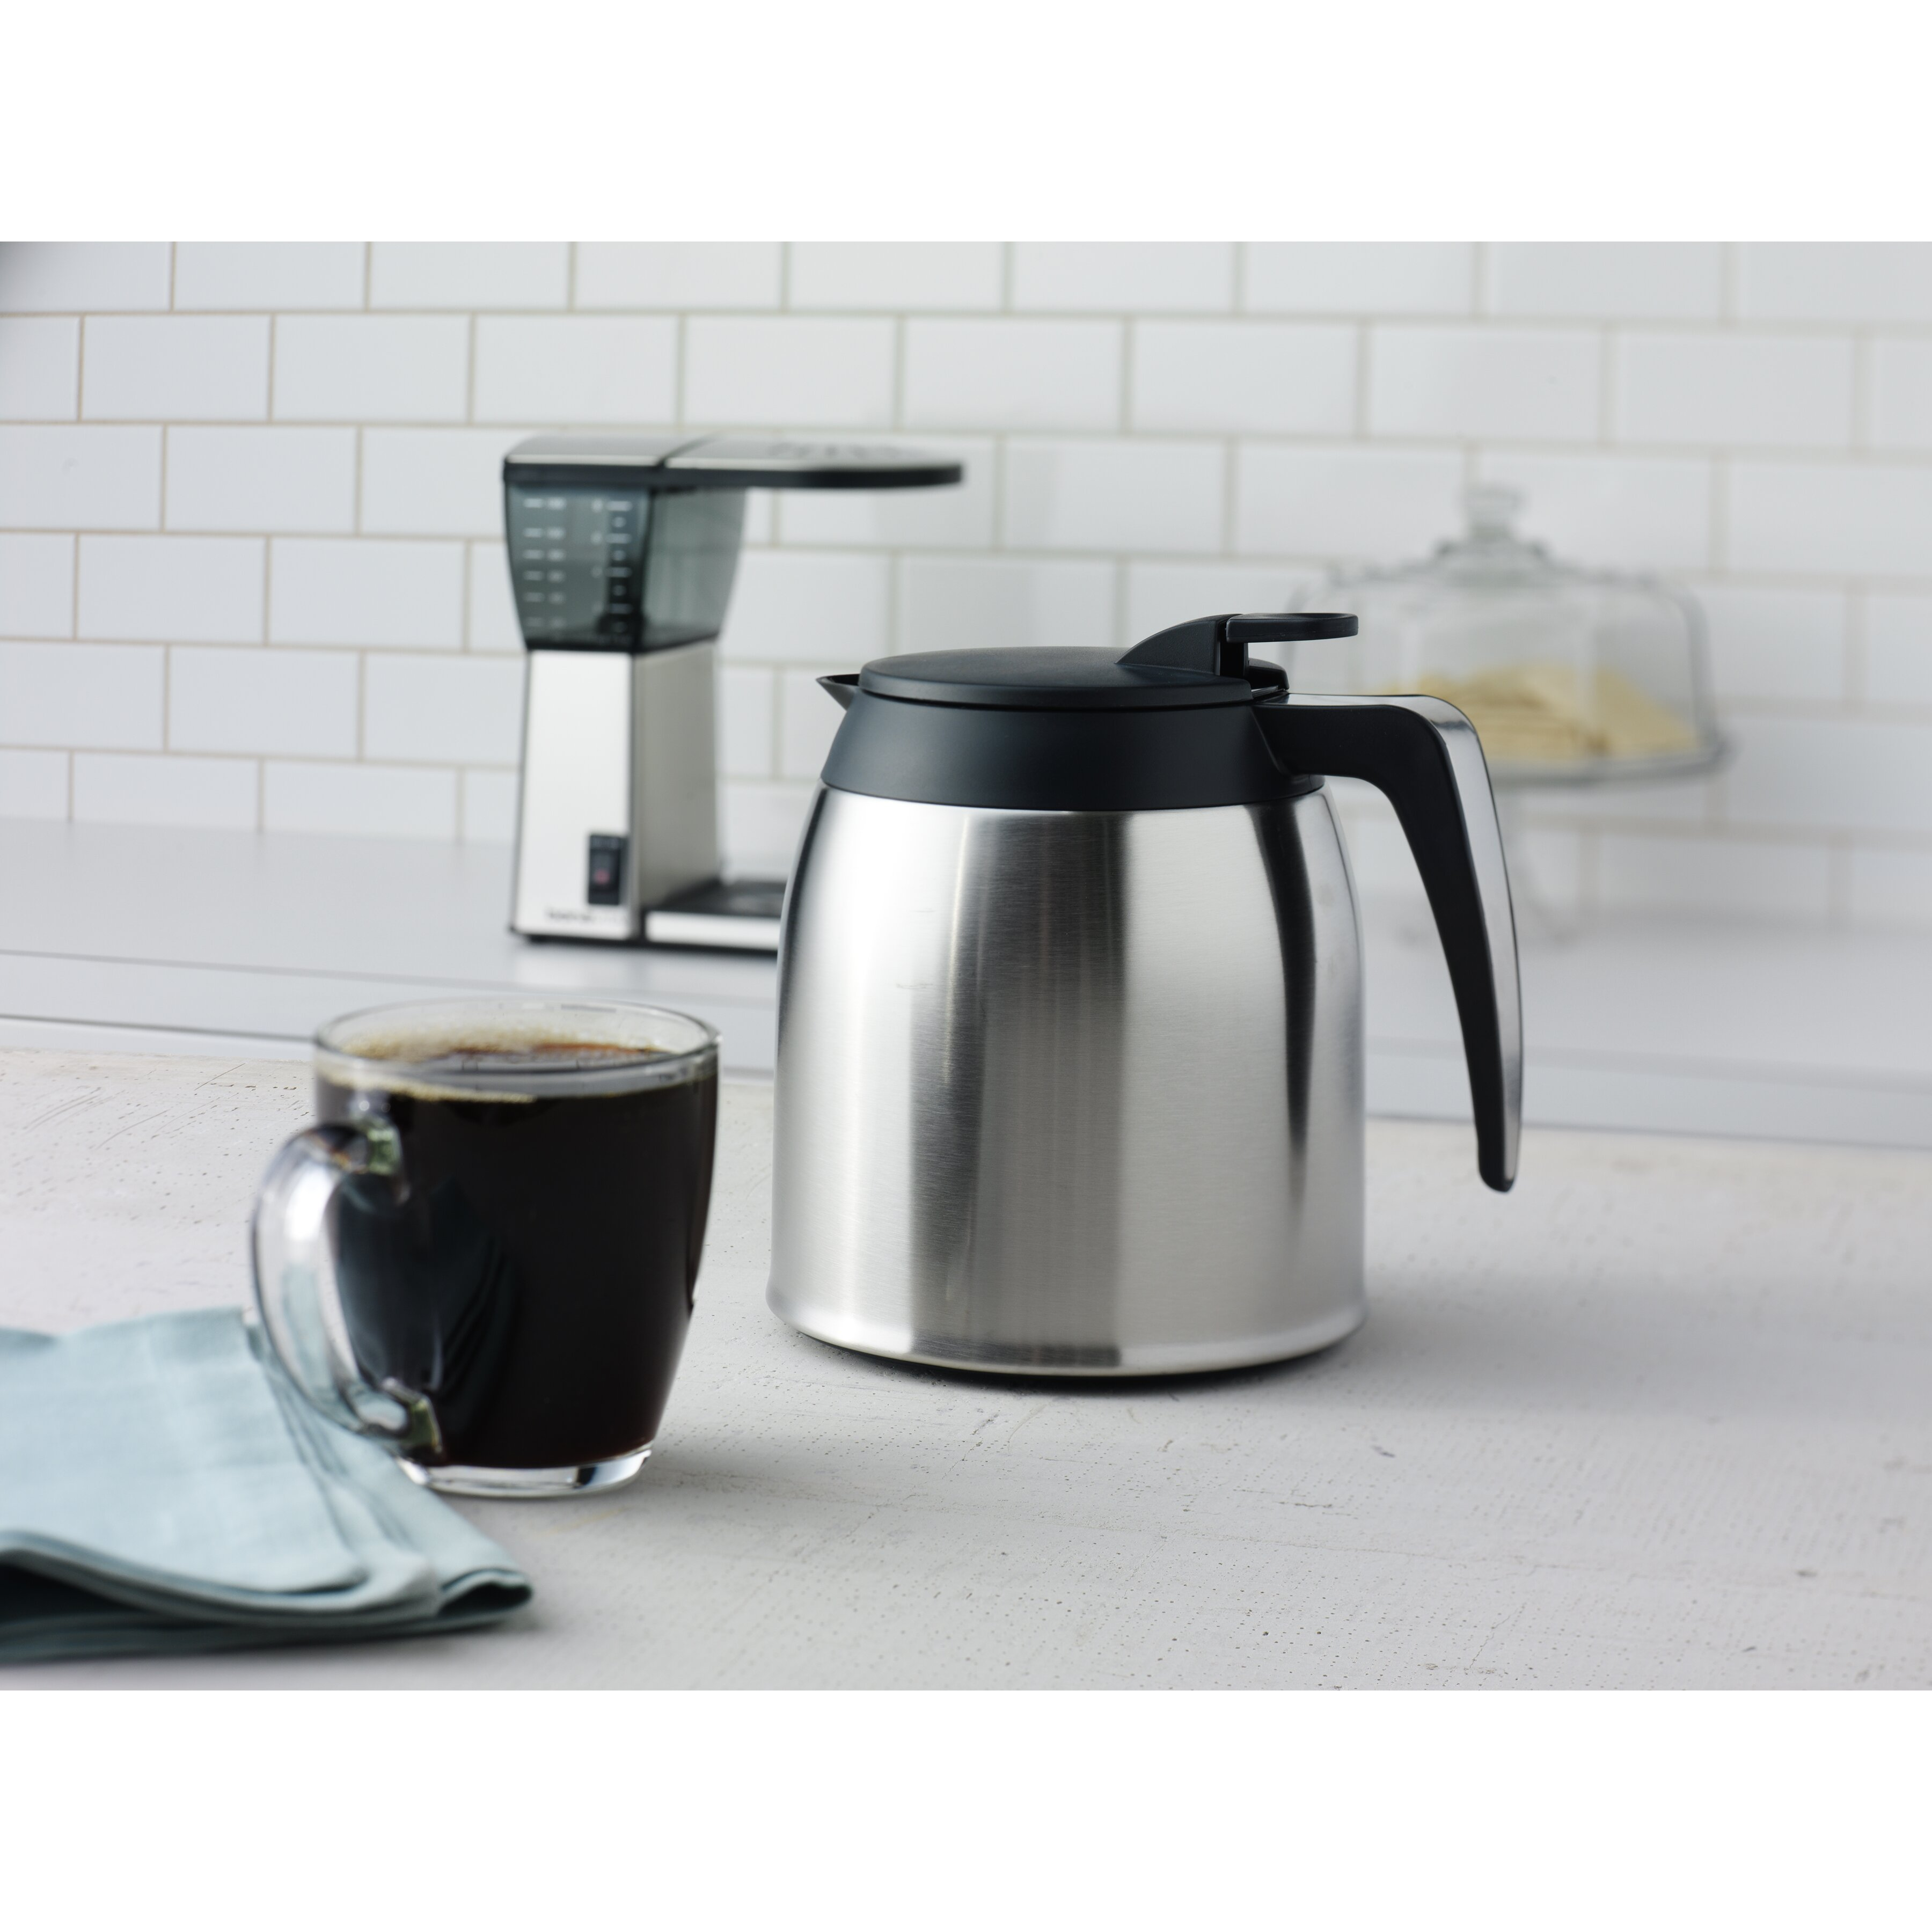 Bonavita 8 Cup Pour Over Coffee Maker with Stainless Steel Lined Carafe & Reviews Wayfair